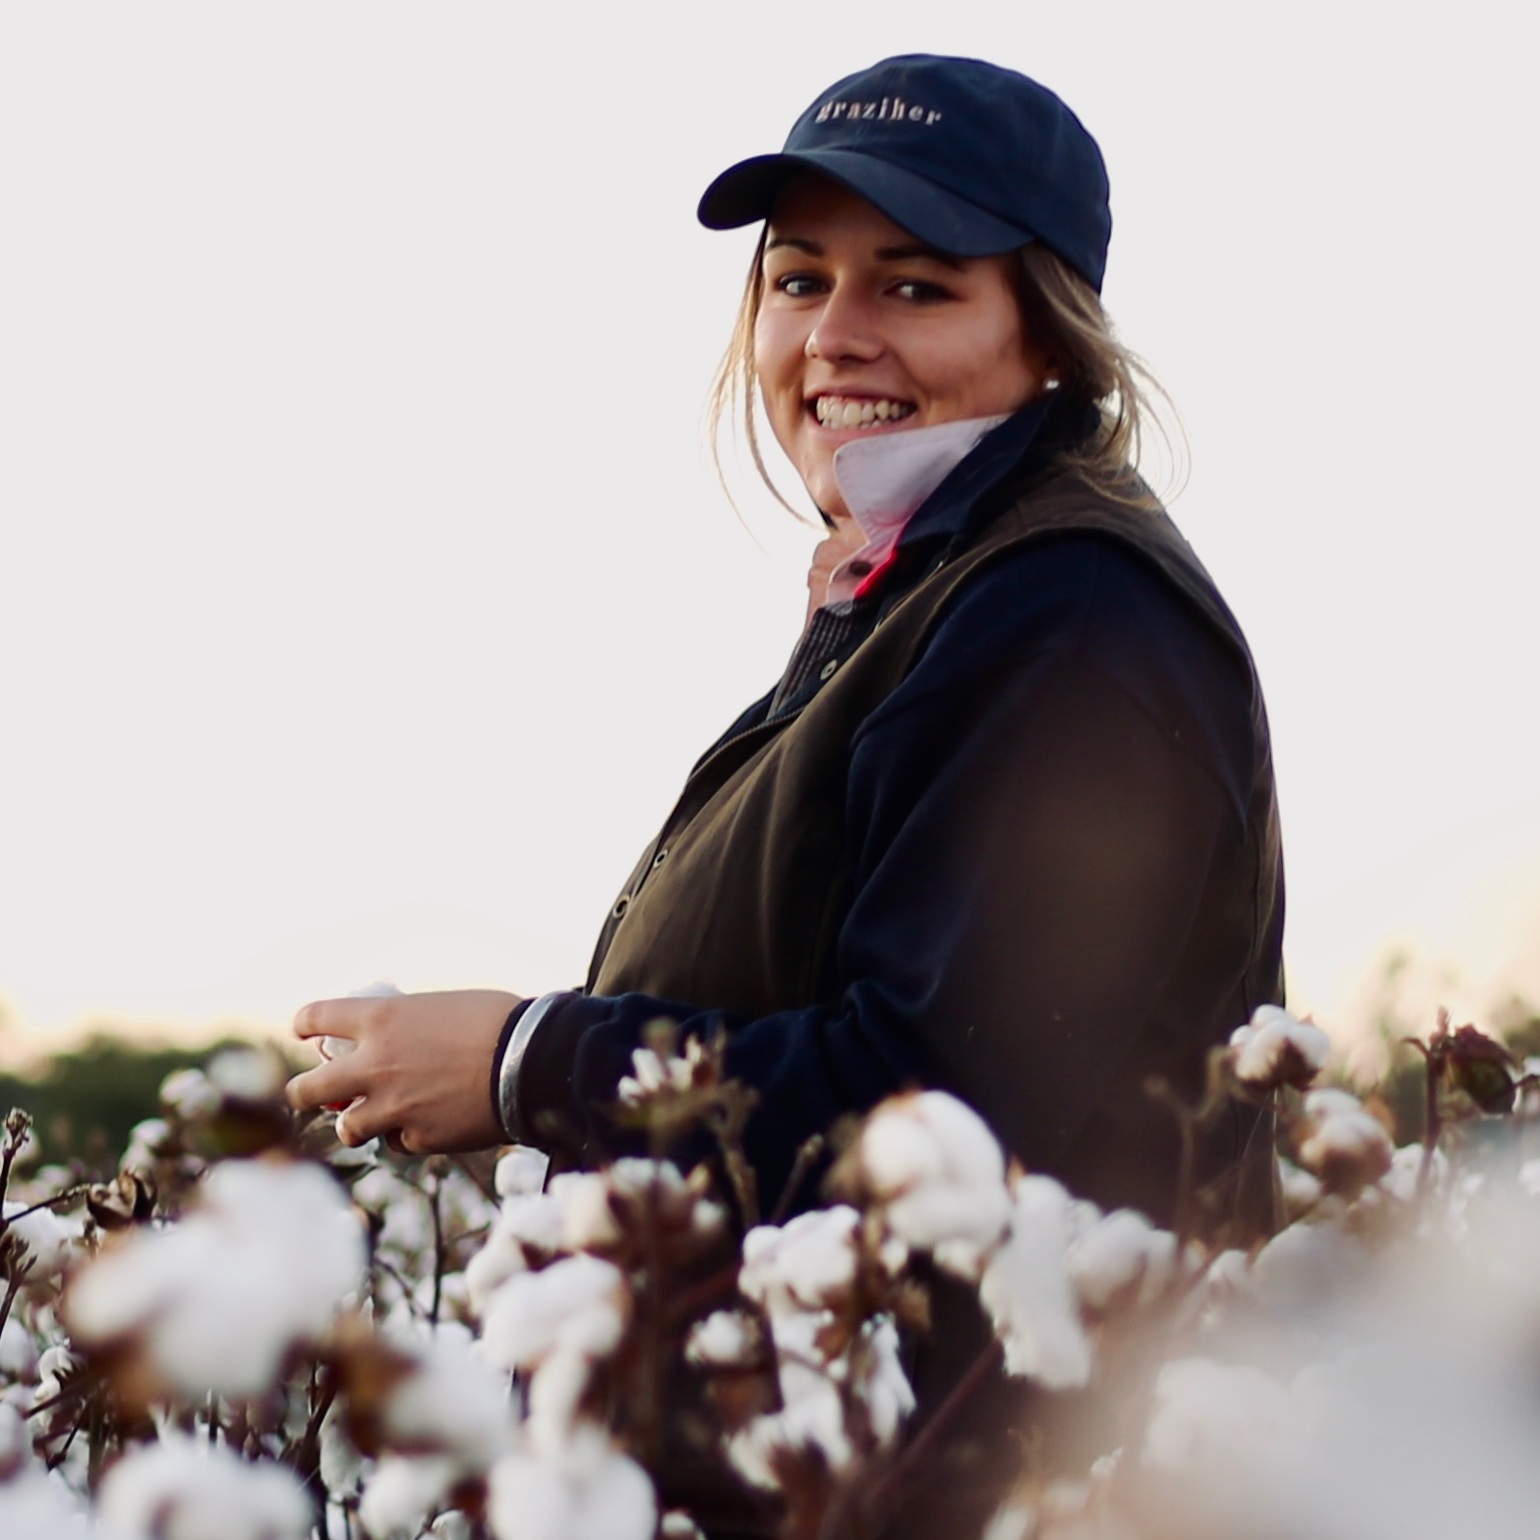 EMMA CROSS   PHOTOGRAPHER & PRODUCTION MANAGER  I'm an audio-visual production manager in Victoria. When I'm not managing events, I'm on the road travelling far and wide to capture in photographs my love for the land and the people who live there.   Instagram